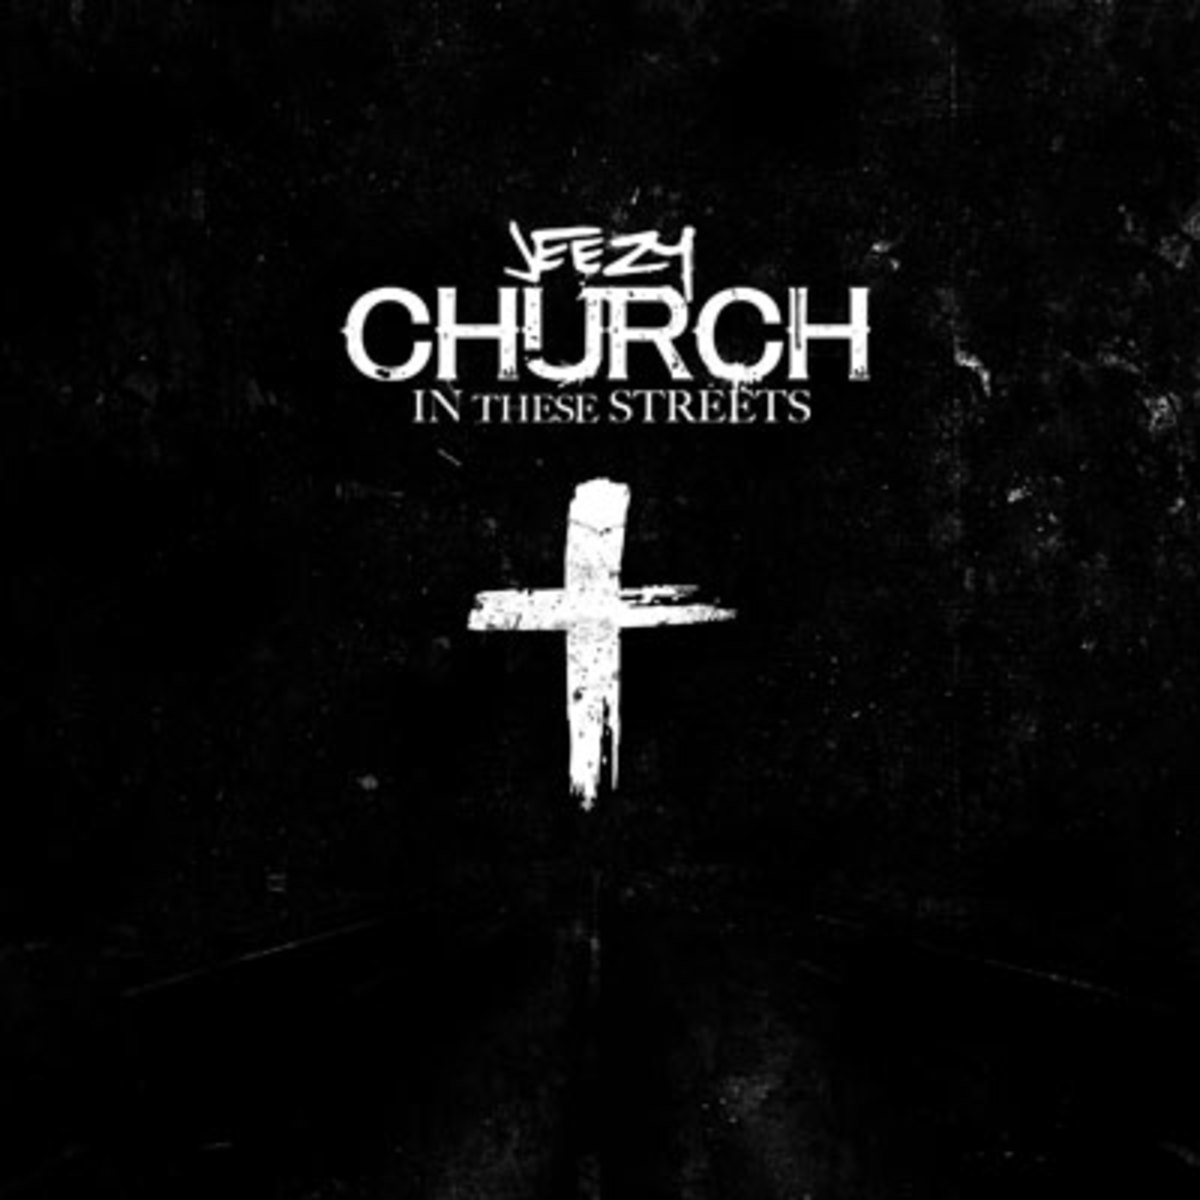 jeezy-church-in-these-streets.jpg